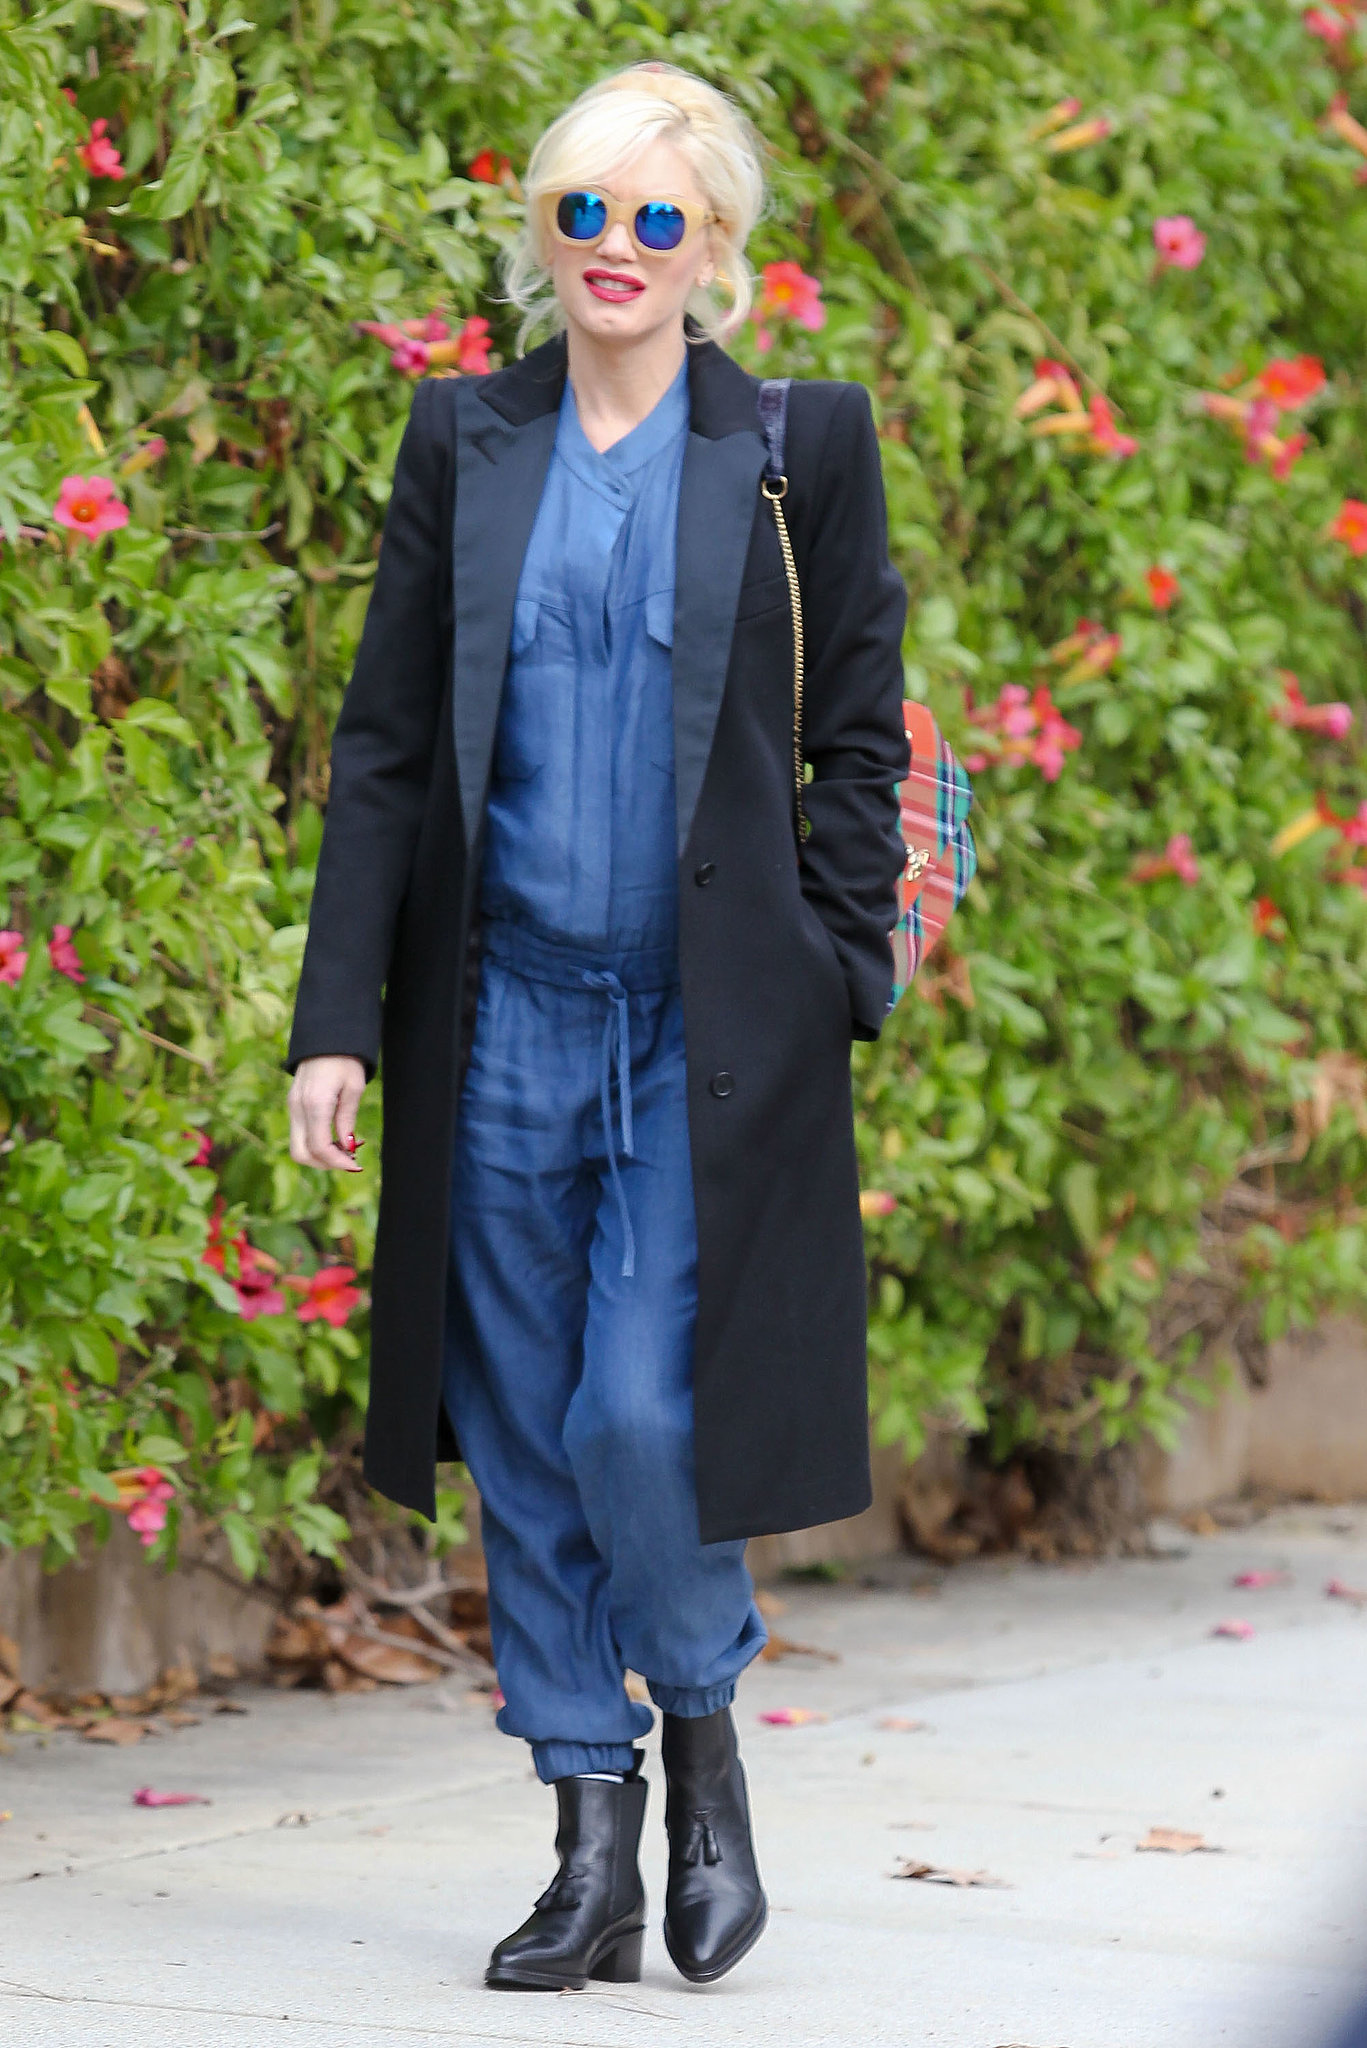 She might've been pushing the envelope with her denim jumpsuit, but that Smythe coat was all business! The sharp lapels were in line with a tuxedo blazer, though this version reached down to hit at the knee.